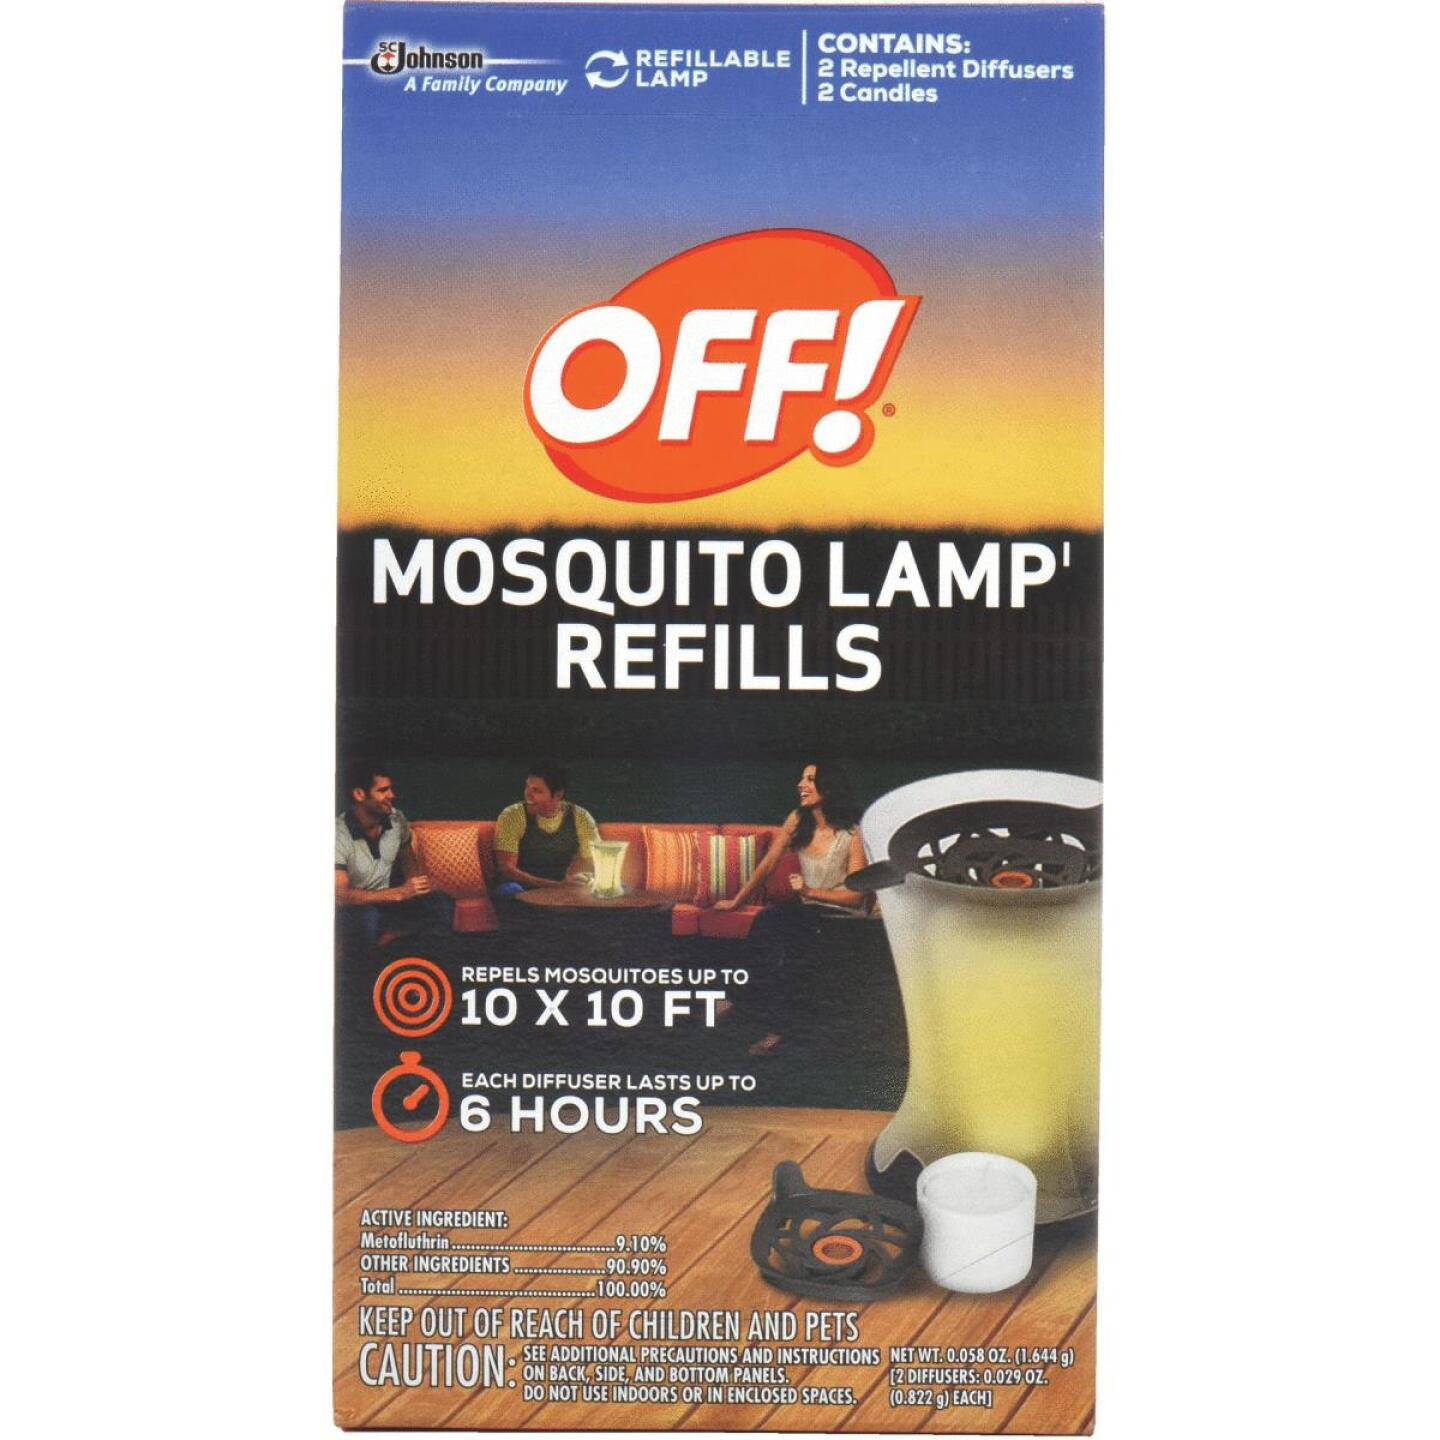 OFF! 6 Hr. Lamp Mosquito Repellent Refill (2-Pack) Image 1